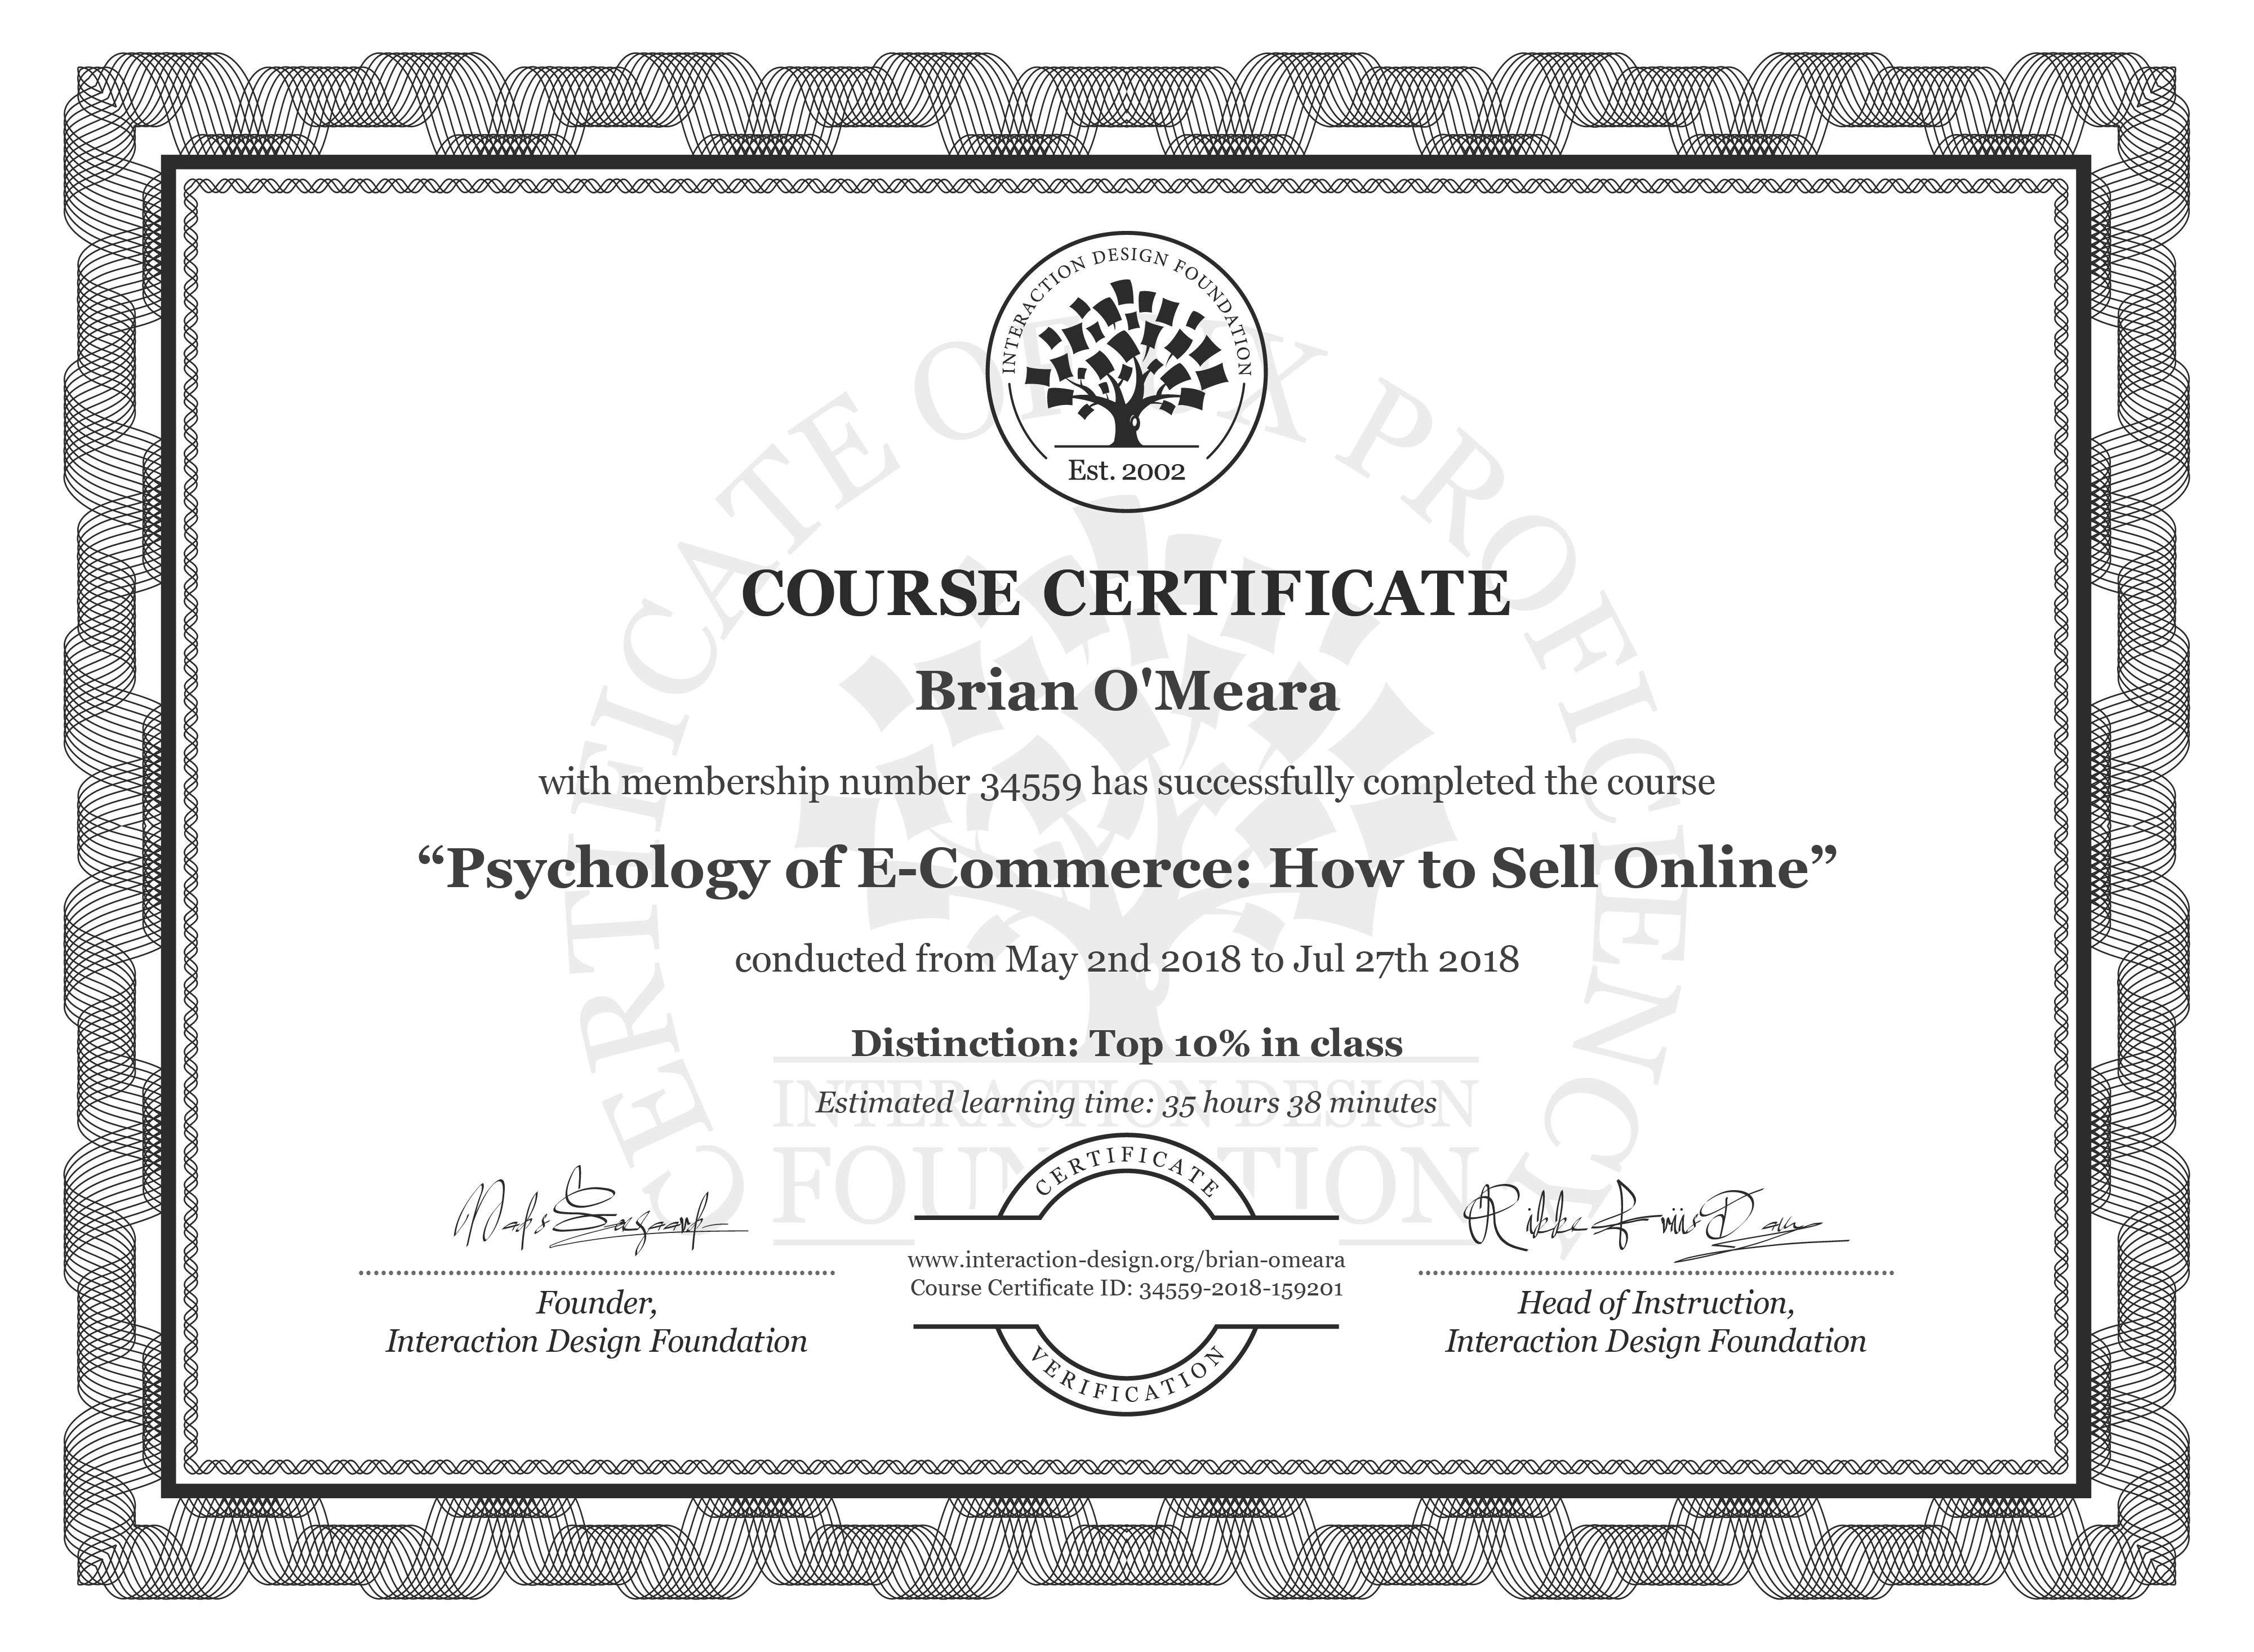 Brian O'Meara: Course Certificate - Psychology of E-Commerce: How to Sell Online